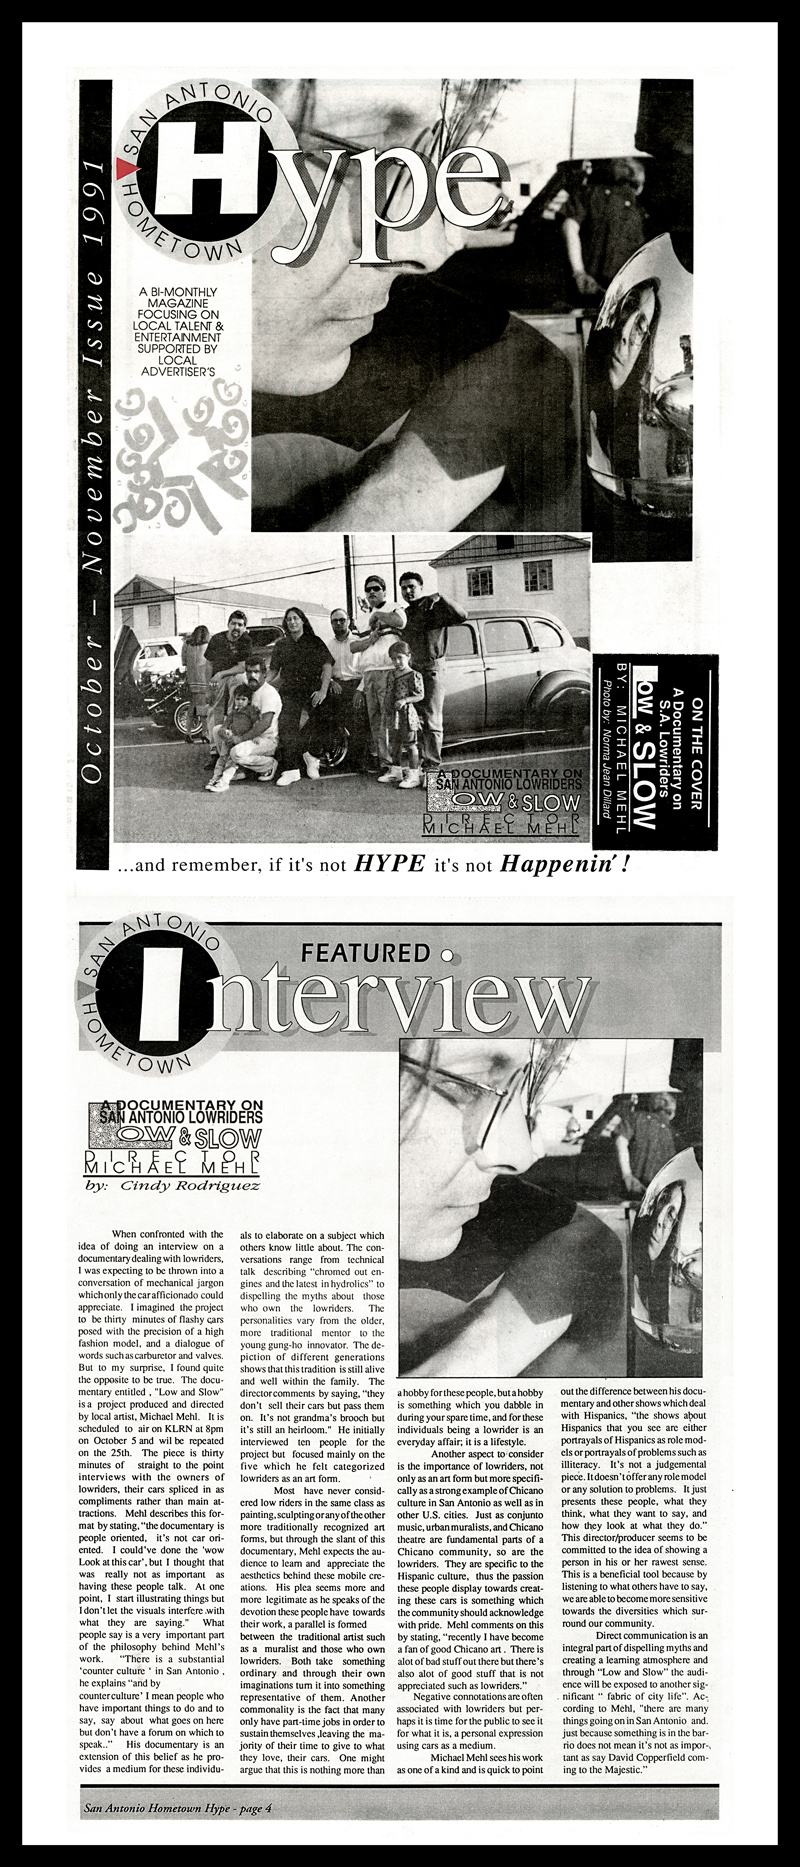 1991_Michael-Mehl_Hype-Magazine_Low-&-Slow-TV-Documentary_Premiere-Public-Screening_Avenida-Guadalupe-Association